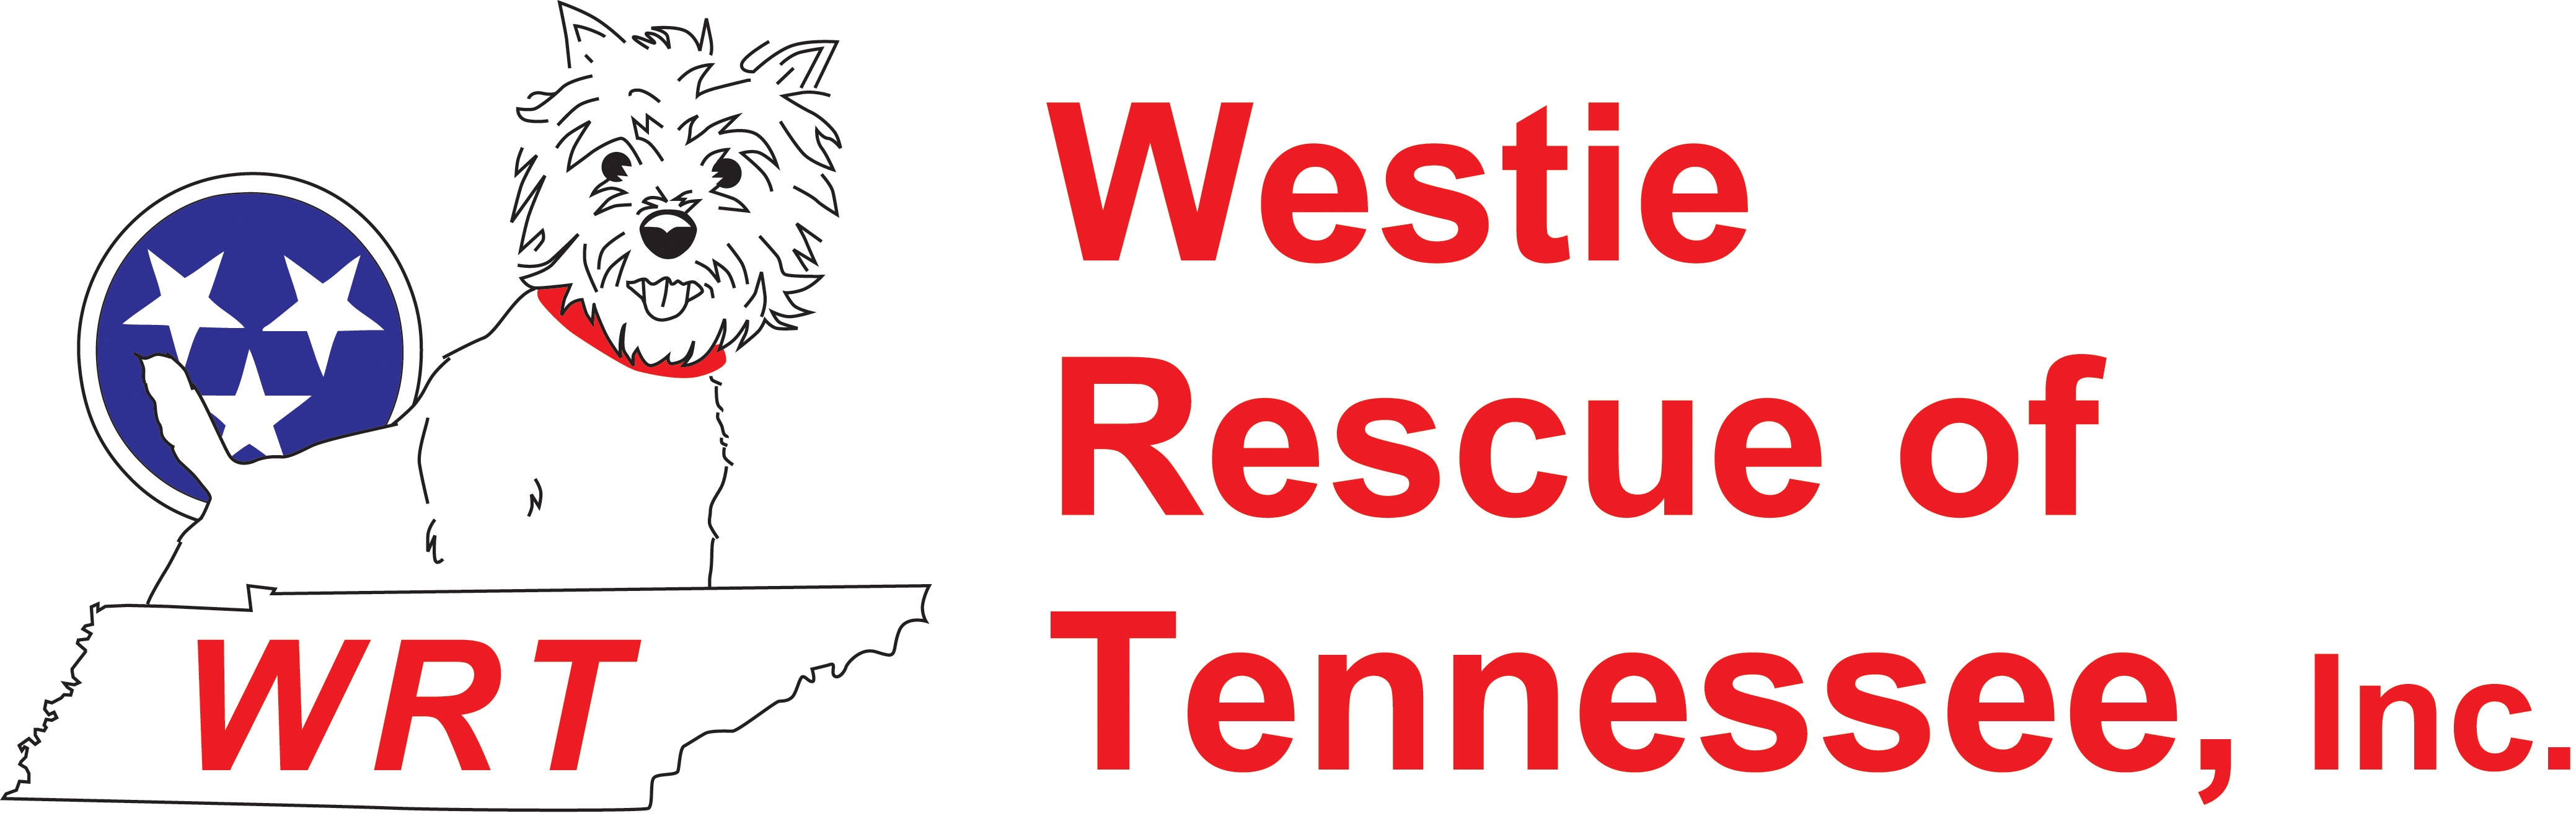 Westie Rescue of Tennessee & Westie Rescue of Alabama